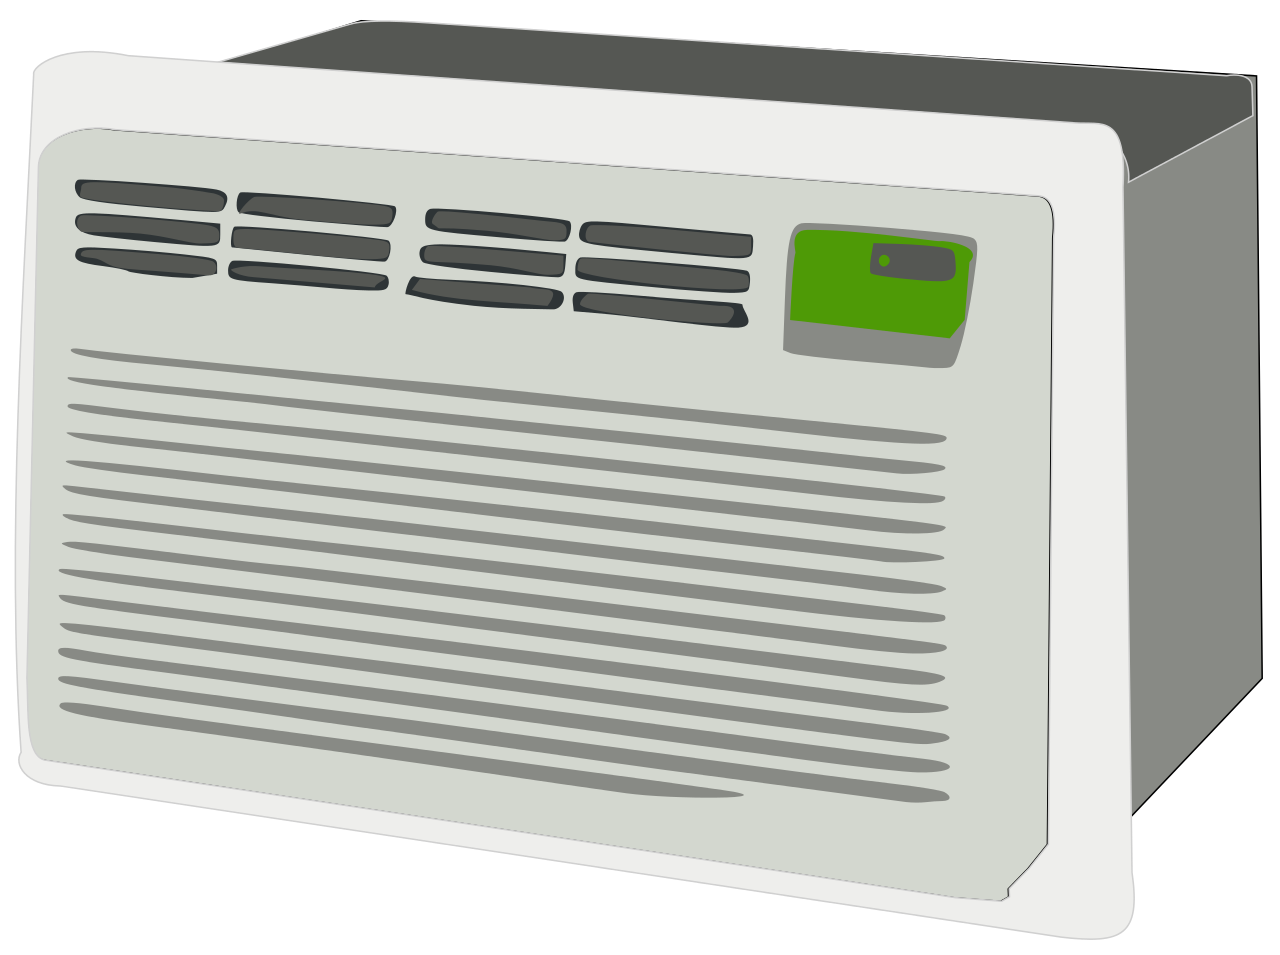 Cool clipart air conditioner. File svg wikimedia commons